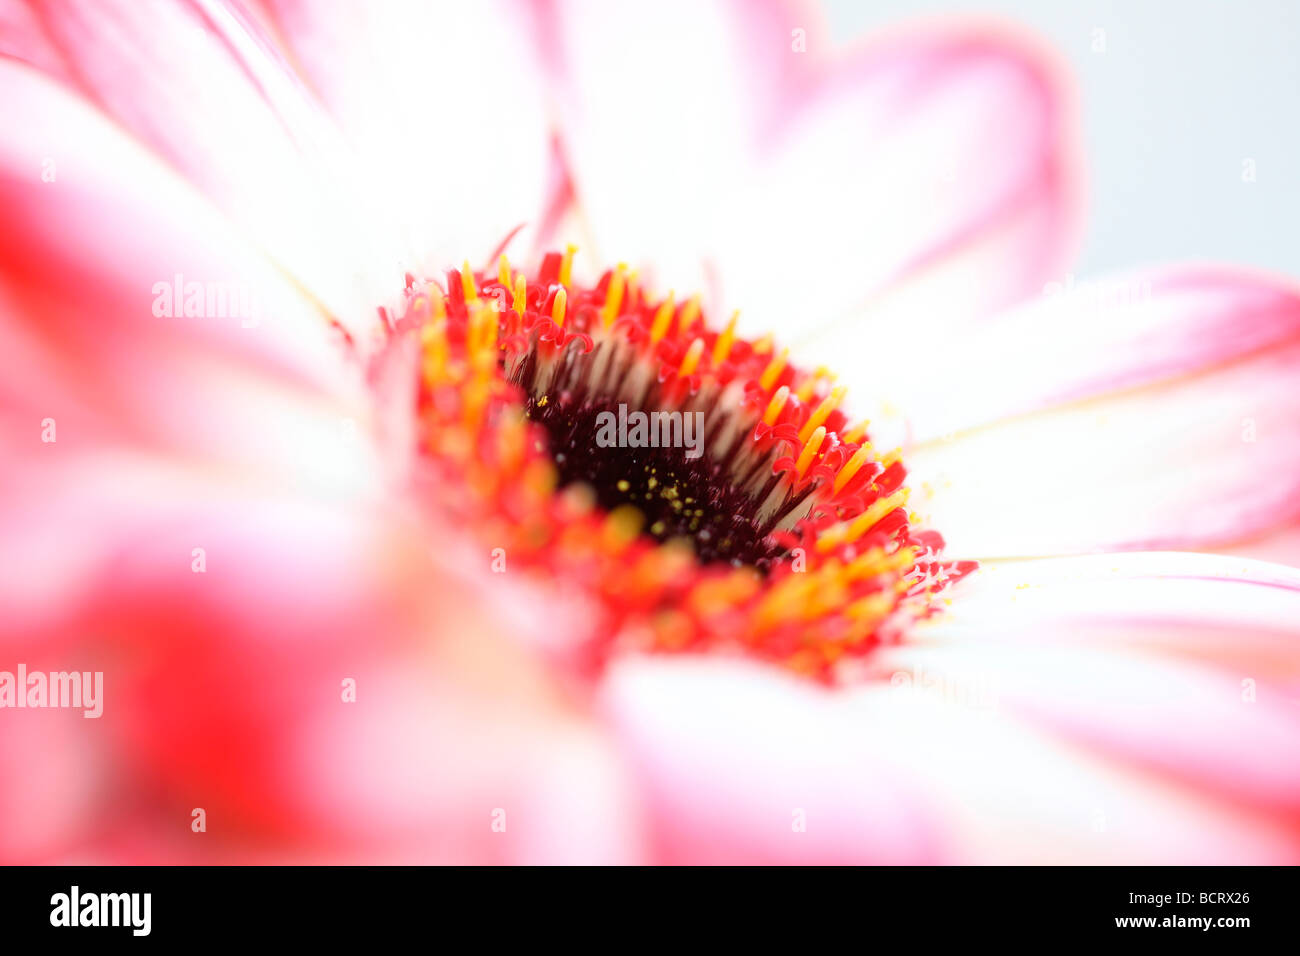 fresh and pure contemporary image of a red tipped gerbera fine art photography Jane Ann Butler Photography JABP357 - Stock Image